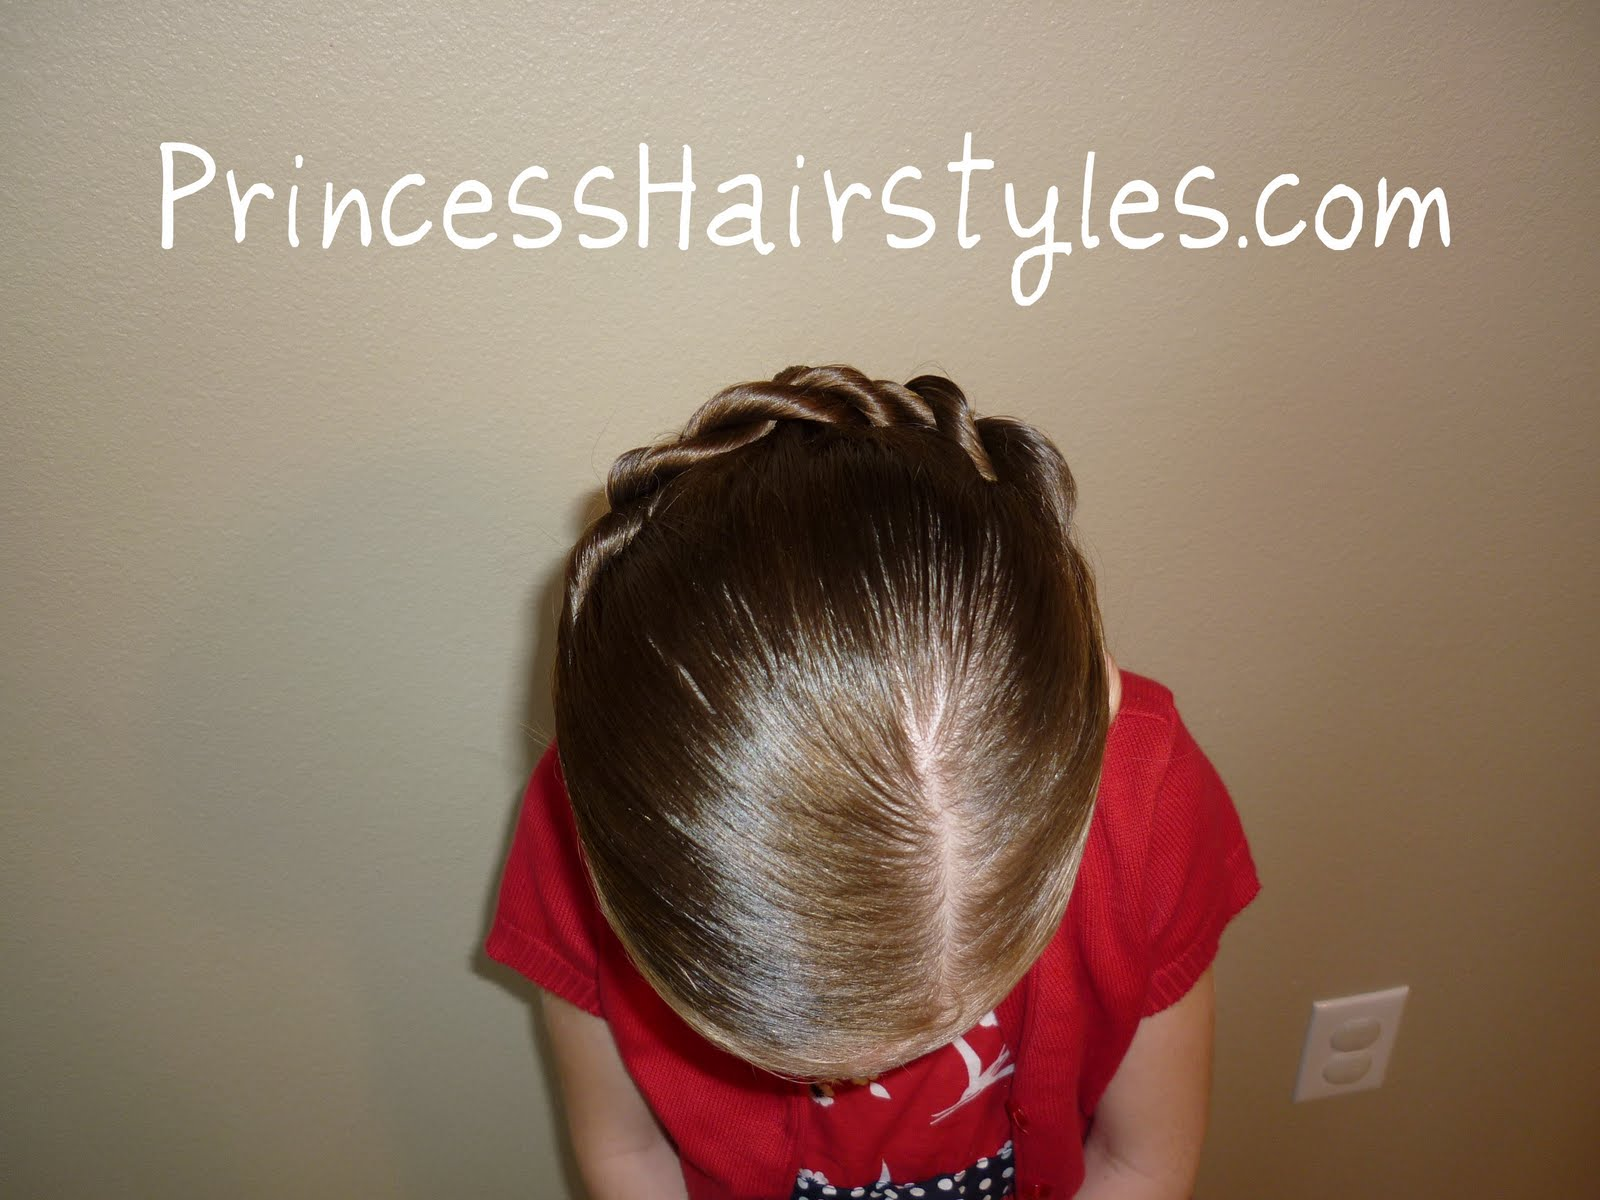 Hairstyles For Girls - Princess